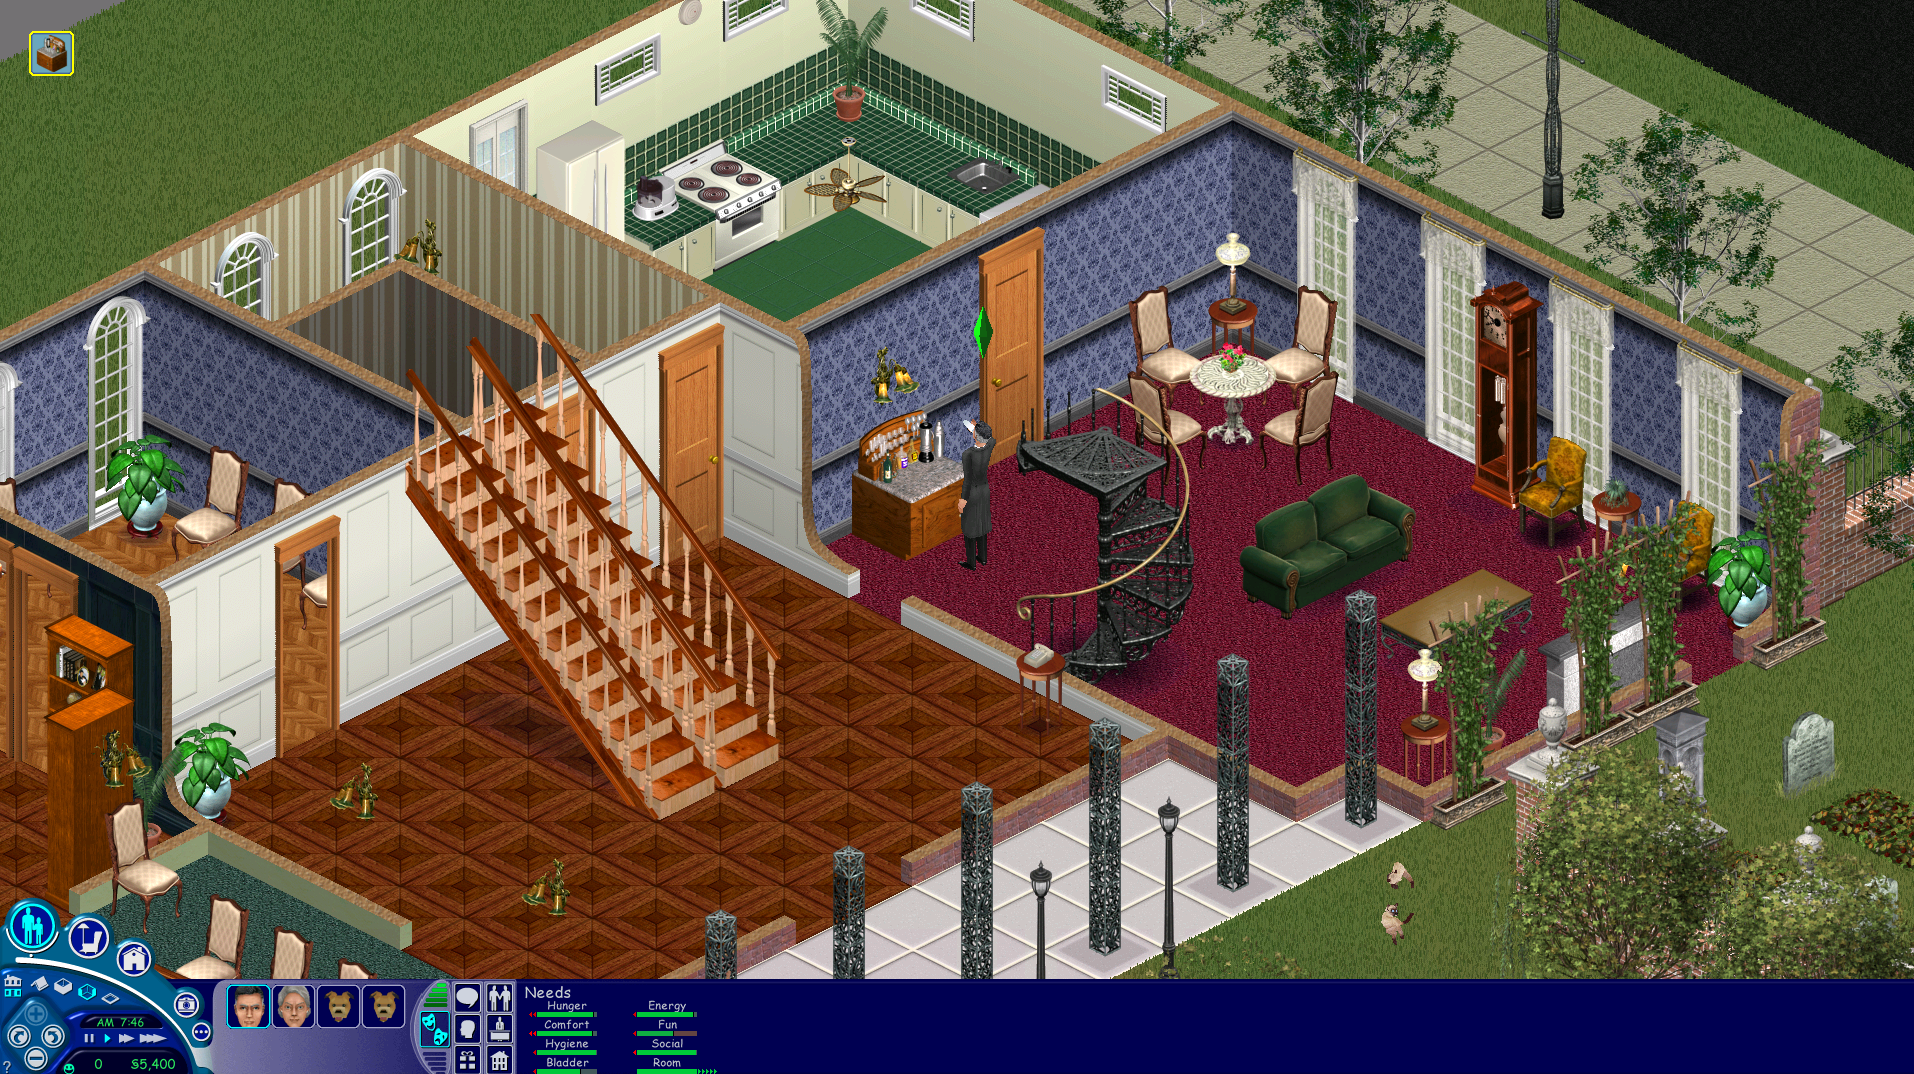 How To Play The Sims 1 on Windows 10 Widescreen Fix